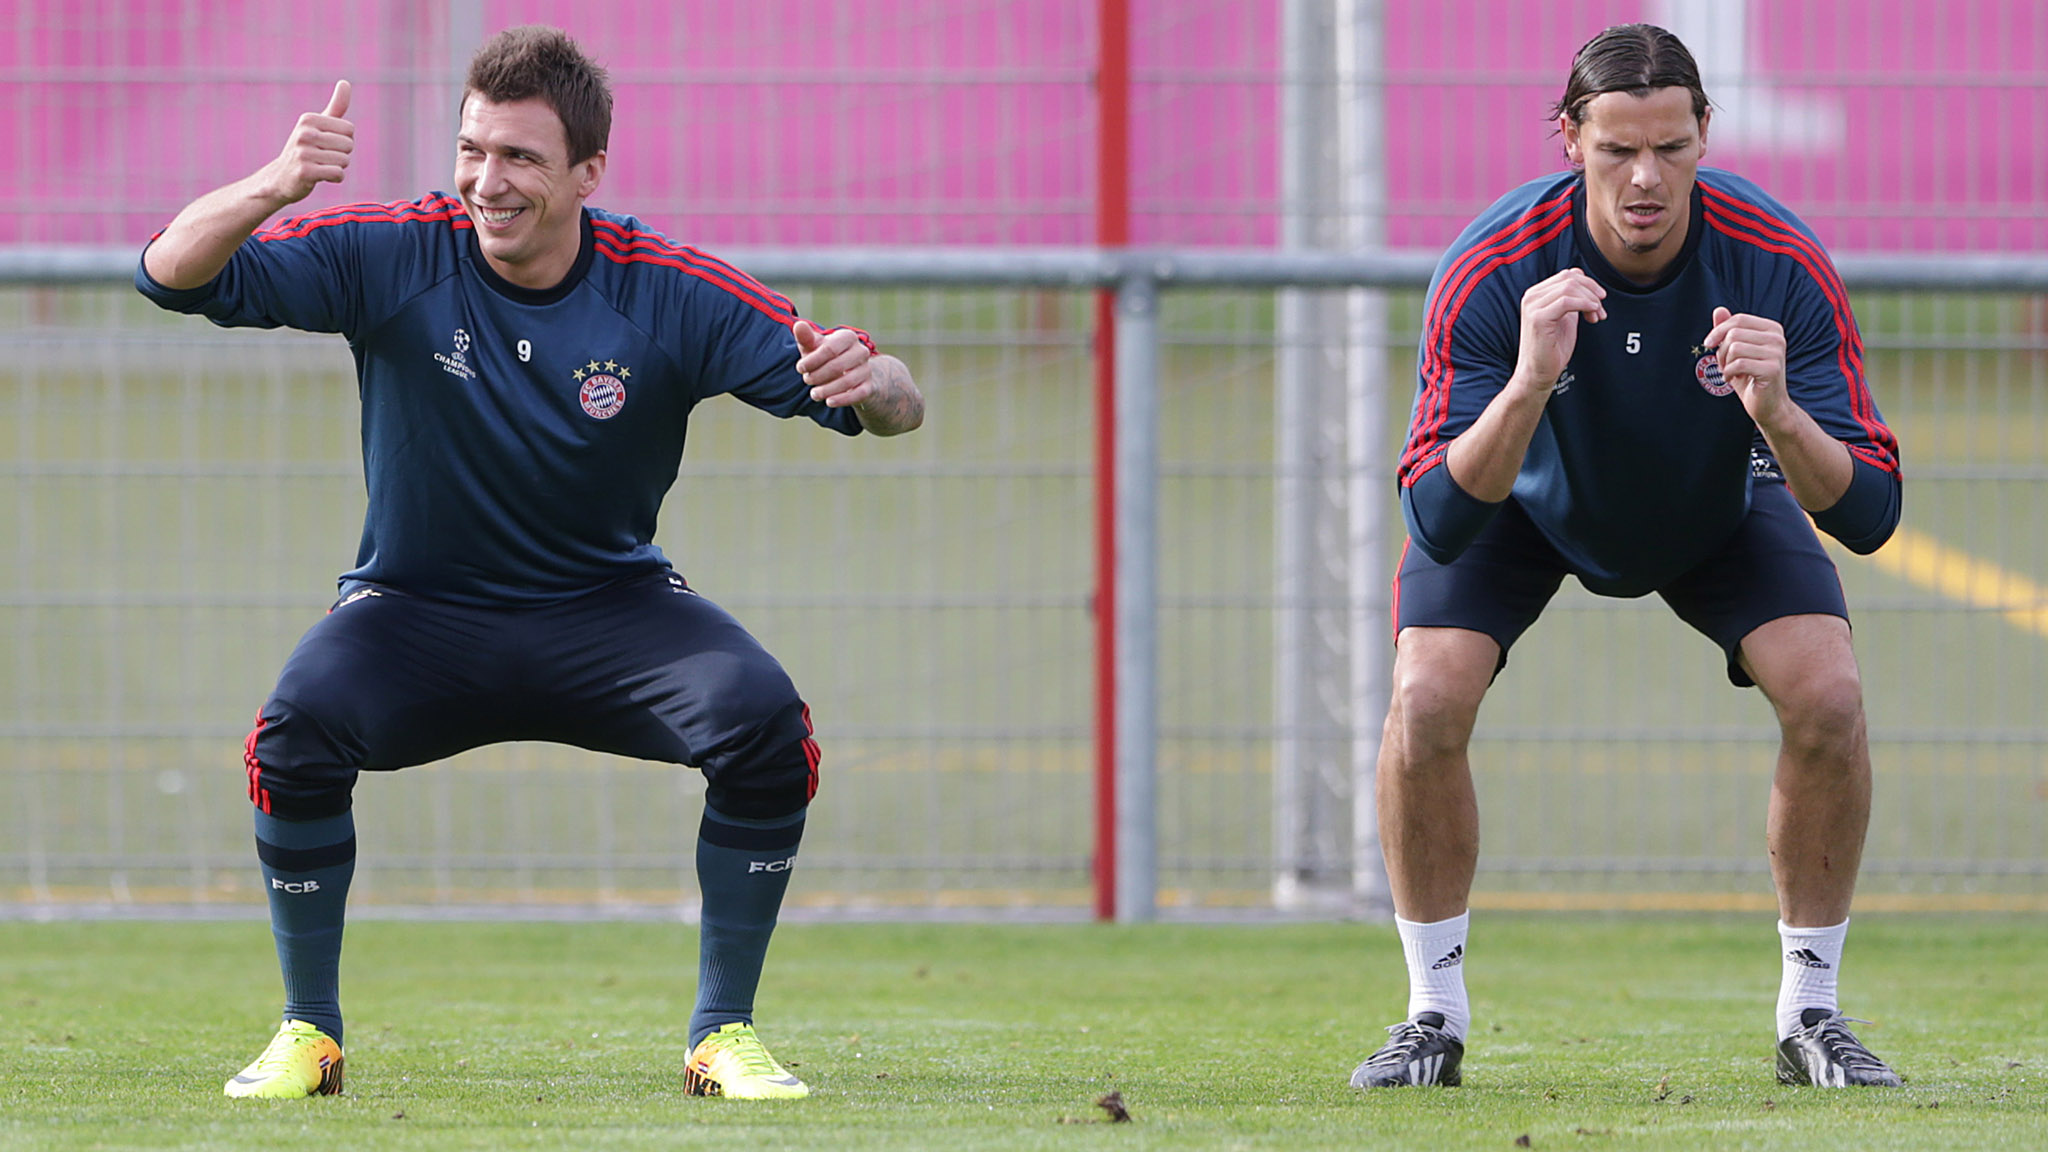 Mario Mandzukic, Daniel van Buyten...Bayern's Mario Mandzukic of Croatia, left, and teammate  Daniel van Buyten of Belgium stretch during a last training session prior to the Champions League group D soccer match between FC Bayern Munich and Viktoria Plzen, in Munich, southern Germany, Tuesday, Oct. 22, 2013. Munich will face Plzen Wednesday. (AP Photo/Matthias Schrader)